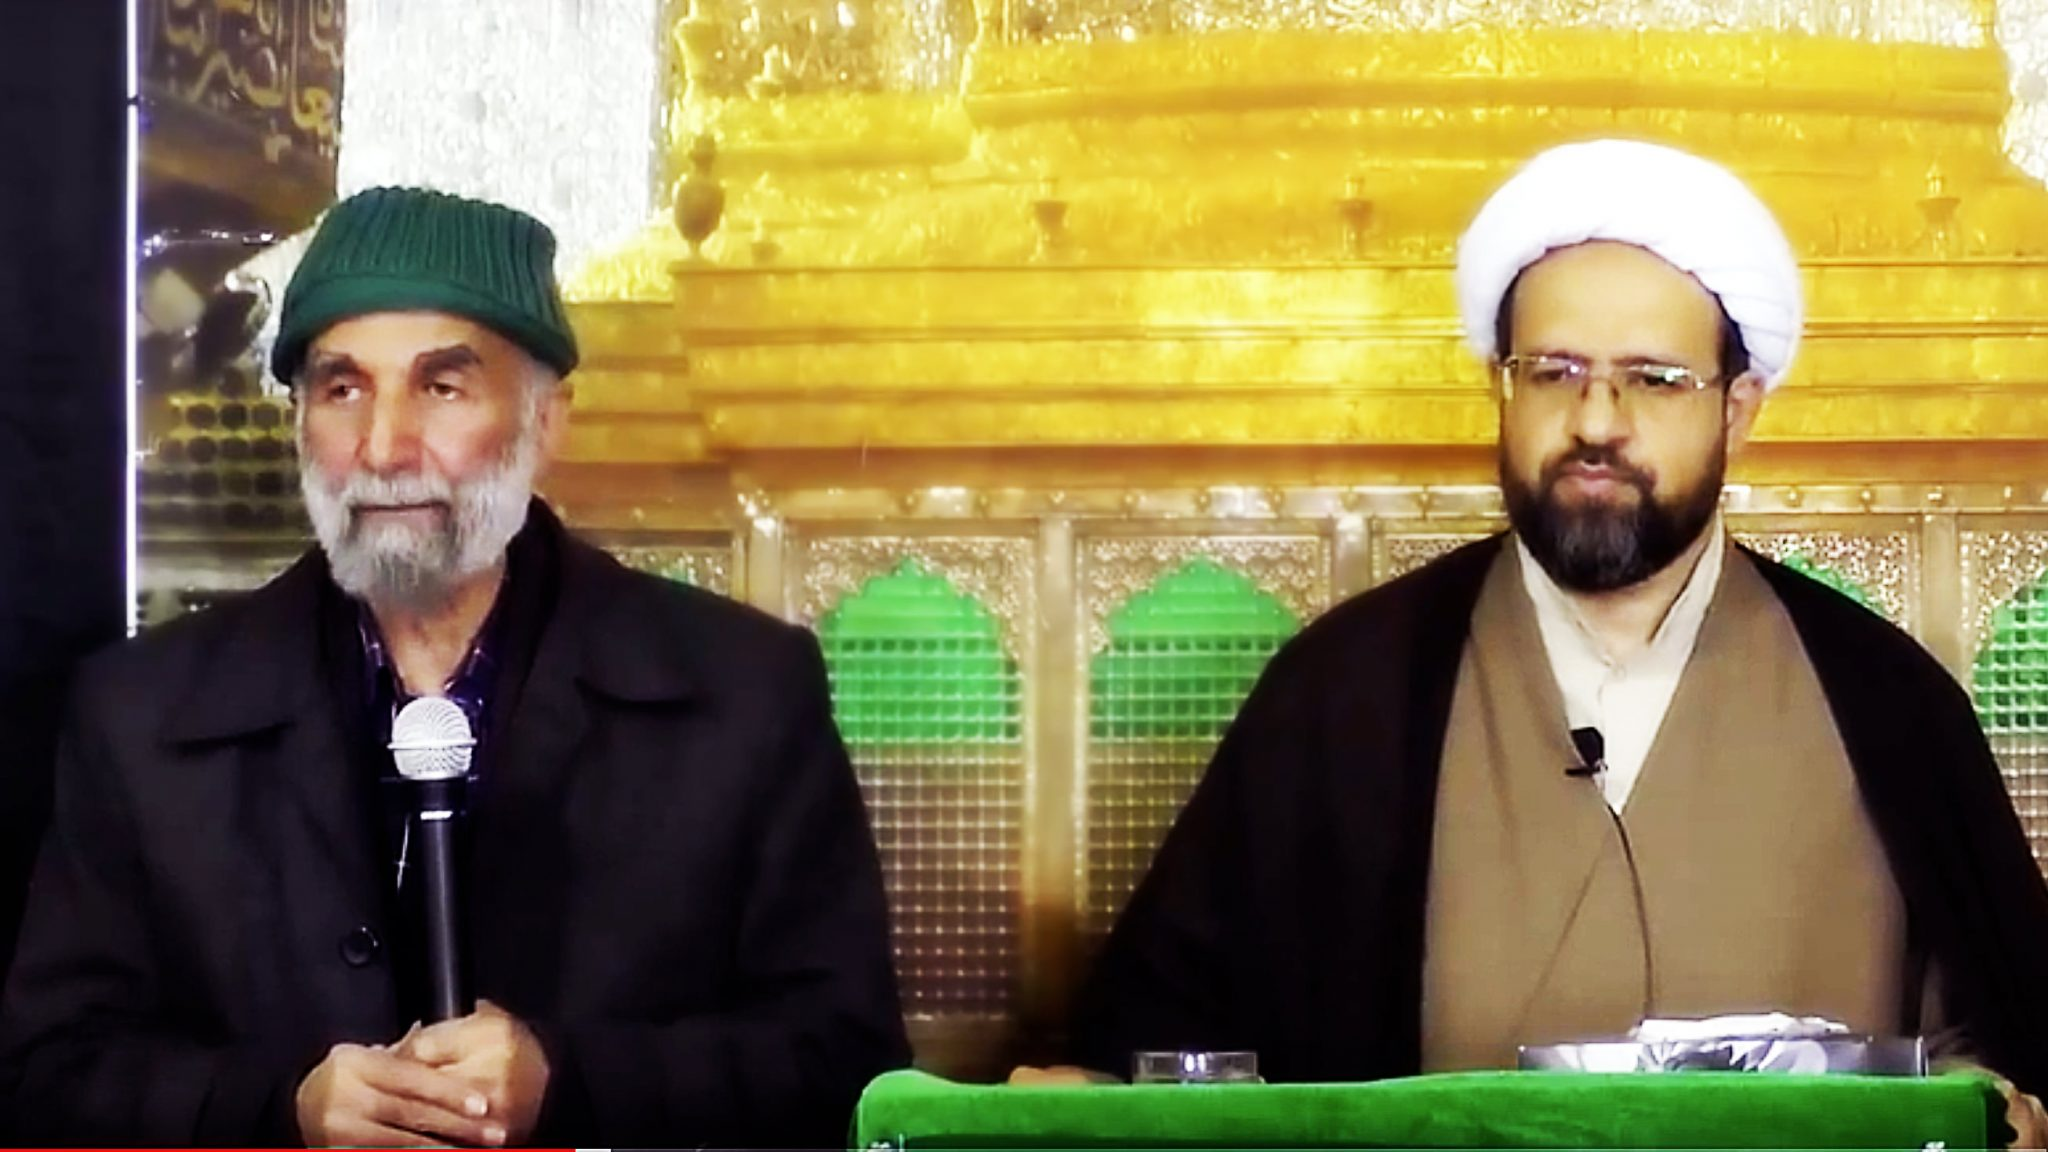 Complaints laid against Auckland Muslim leaders and Islamic Republic of Iran diplomat